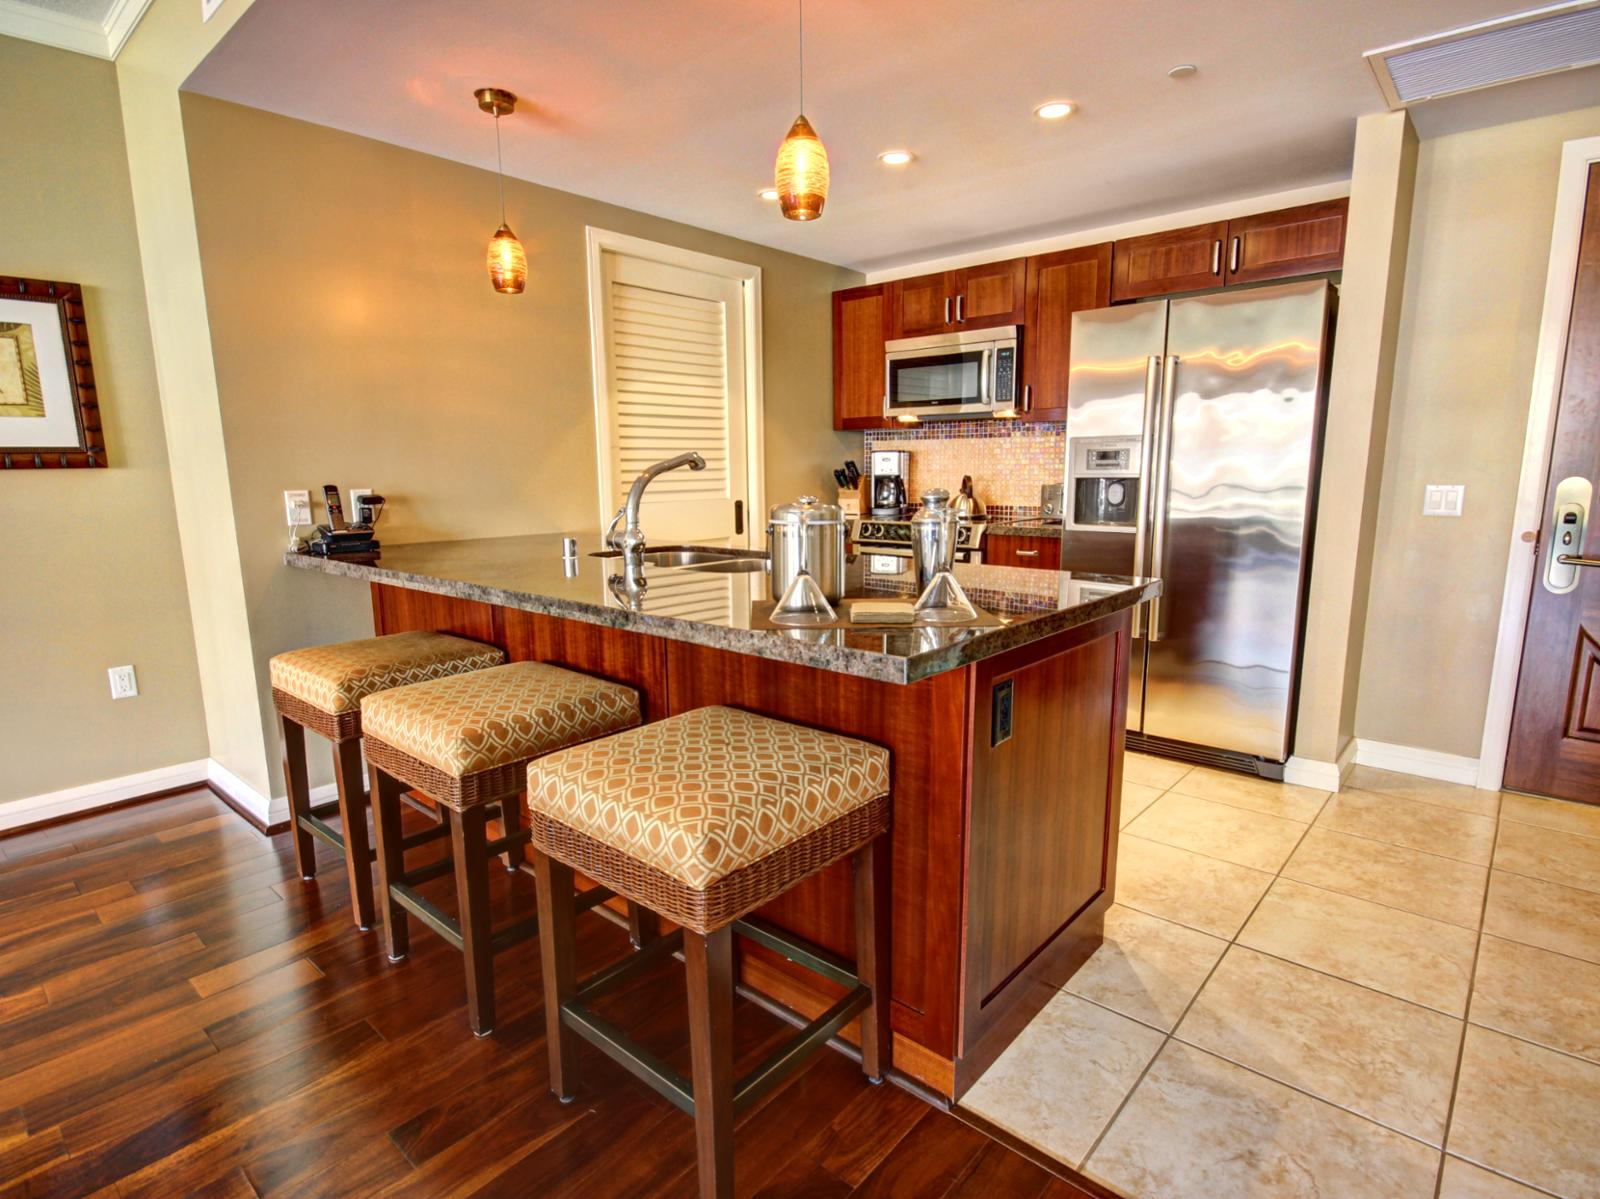 Sit and enjoy a casual meal or a cold libation at this kitchen counter.